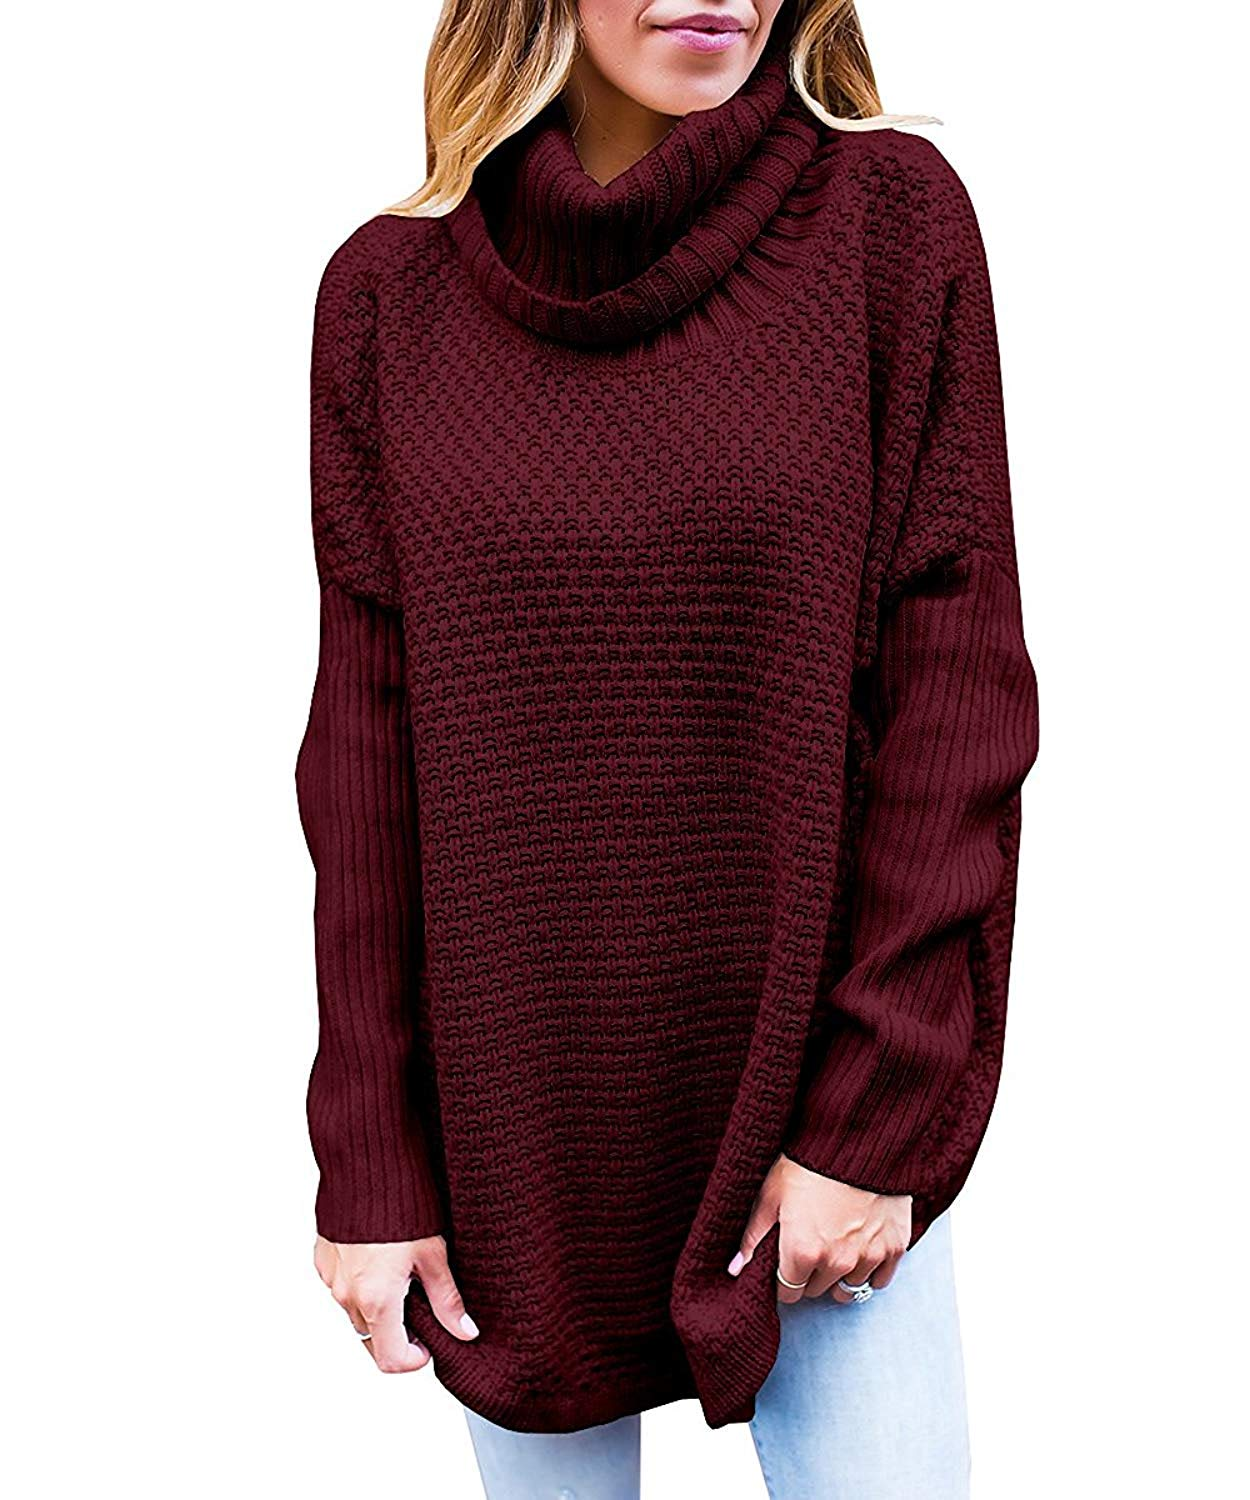 VOKY Womens Long Sleeve Sweaters Knitted Cowl Neck Loose Fit Oversized Pullovers Tops